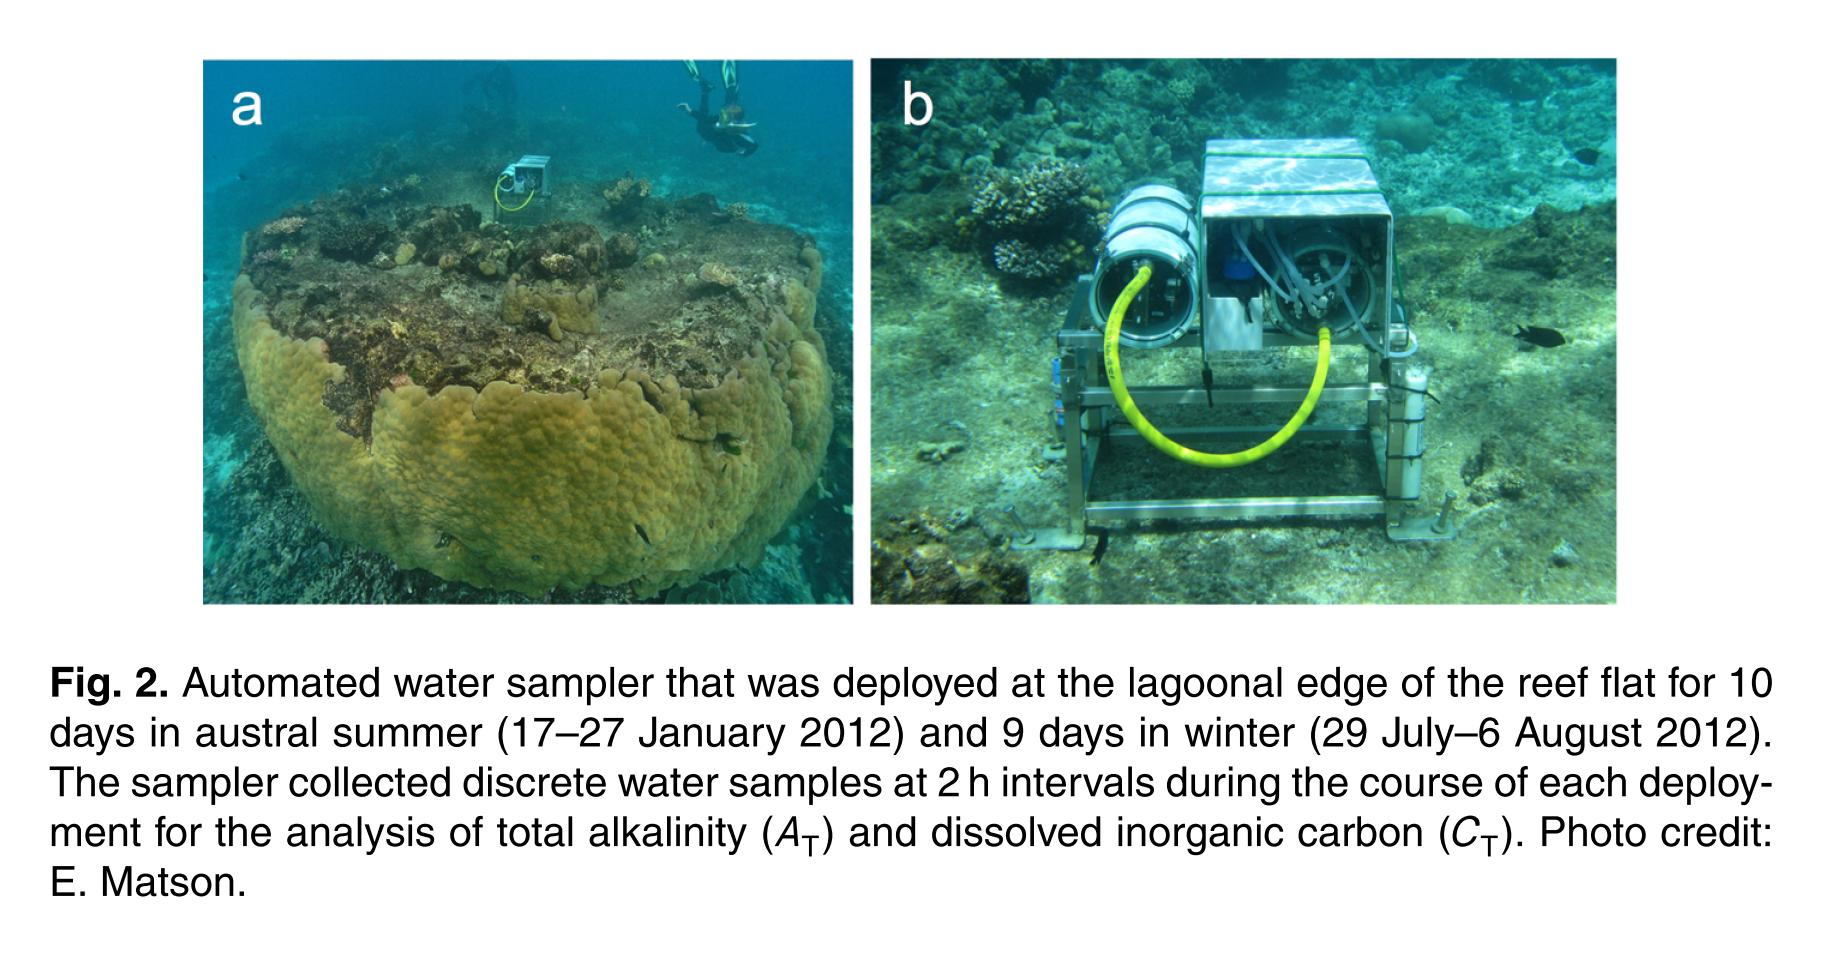 Coral Reefs Suffering from Ocean Acidification